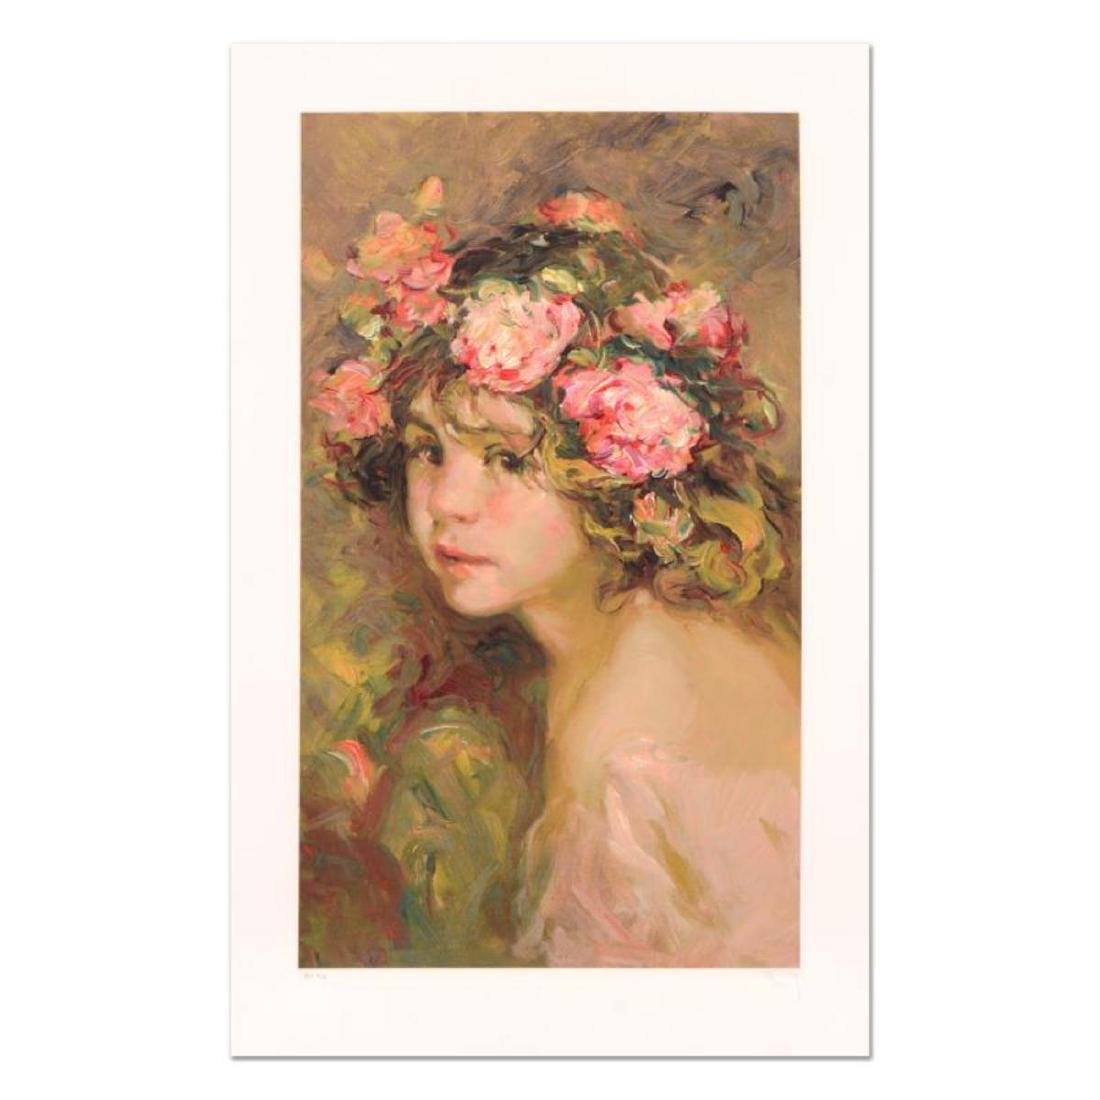 """Royo - """"Inocencia"""" Limited Edition Serigraph, Numbered"""